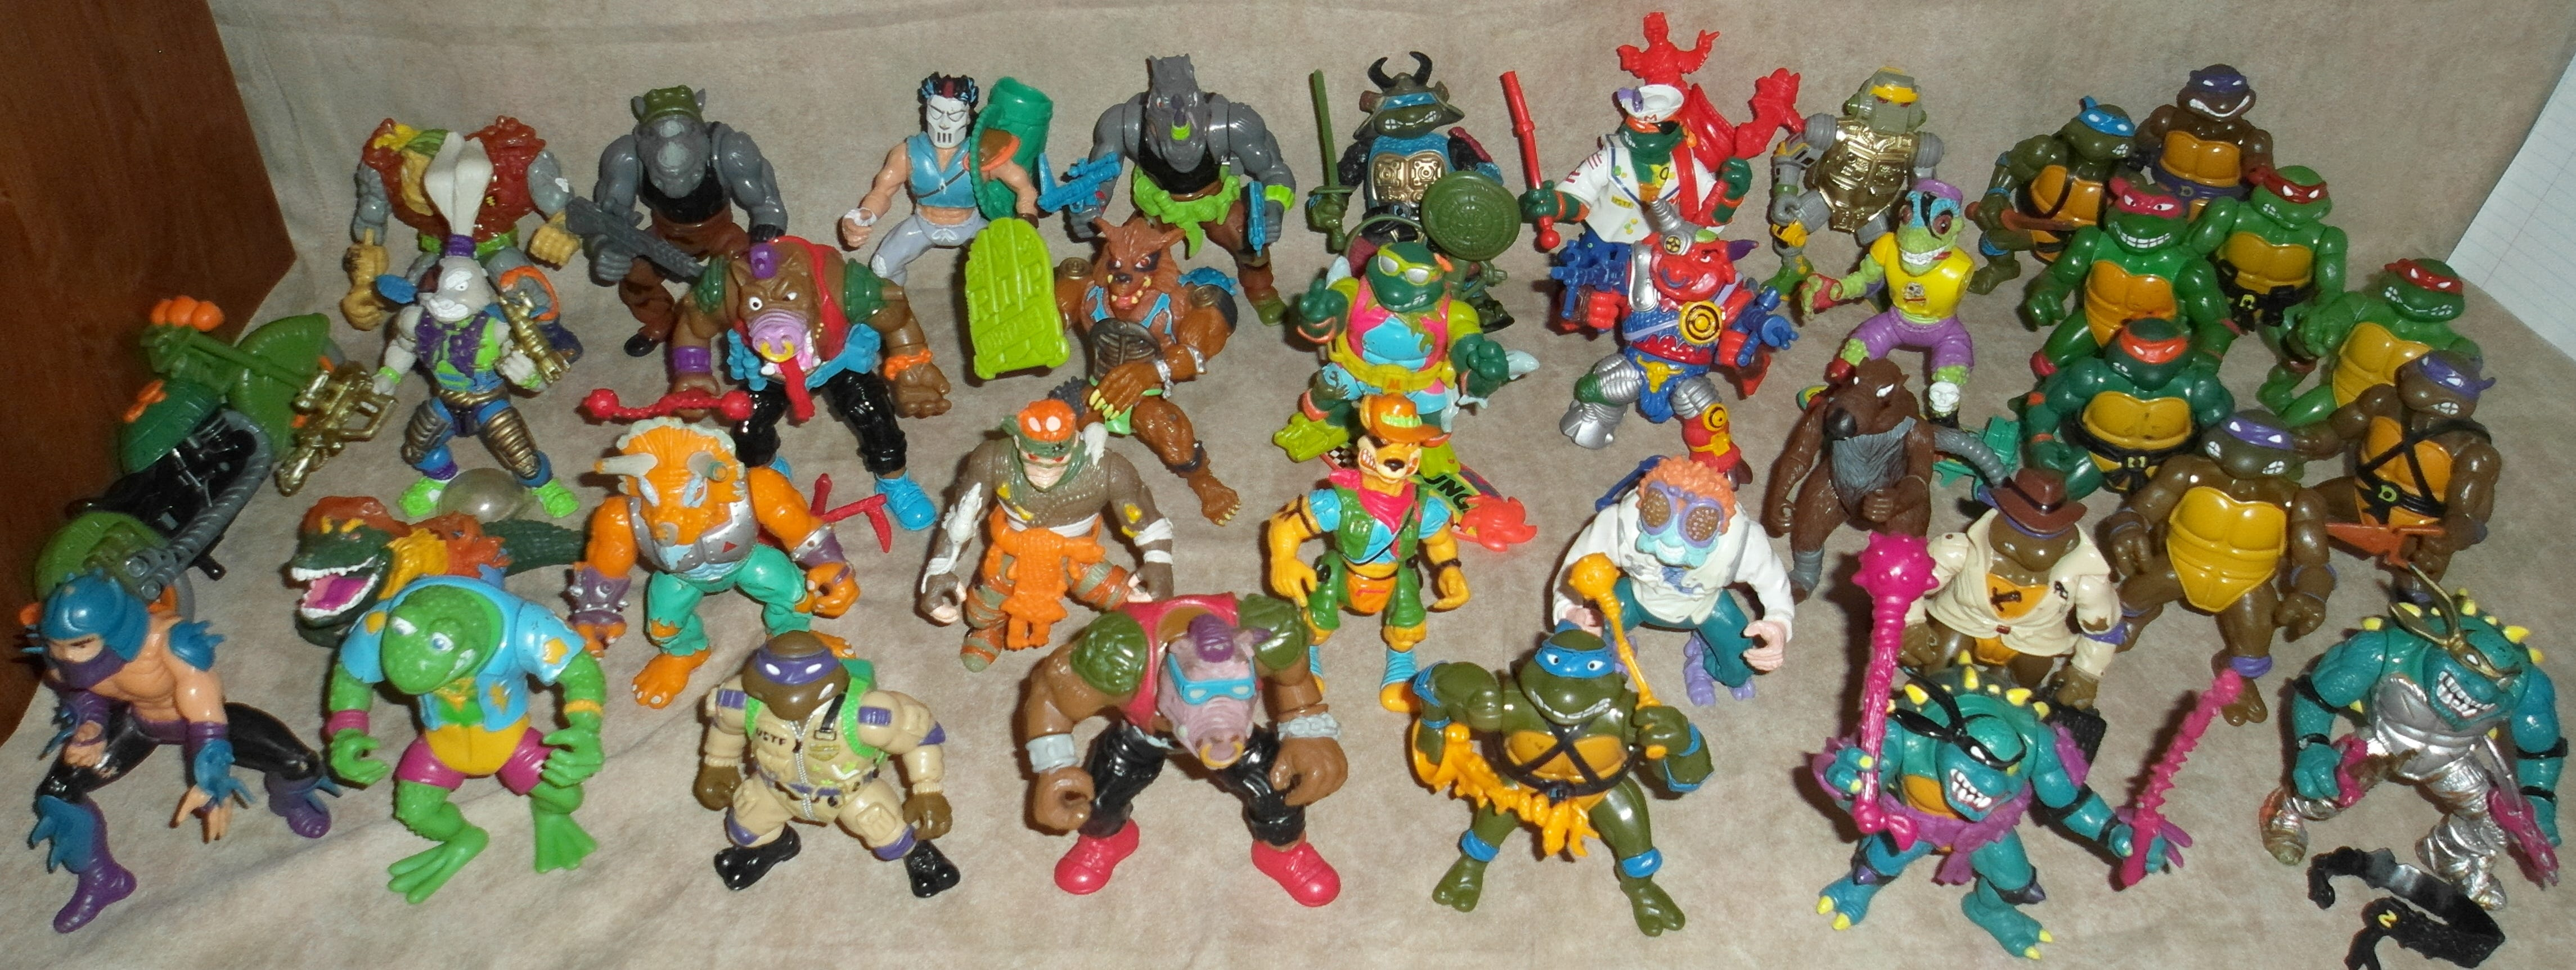 Claasic vintage toys vintage toys second shout out http www - Tmnt Action Figures Are Probably 2nd In The Action Figure World Behind Gi Joes The Case Can Be Made For Ghostbusters As Well When You Factor In Just How